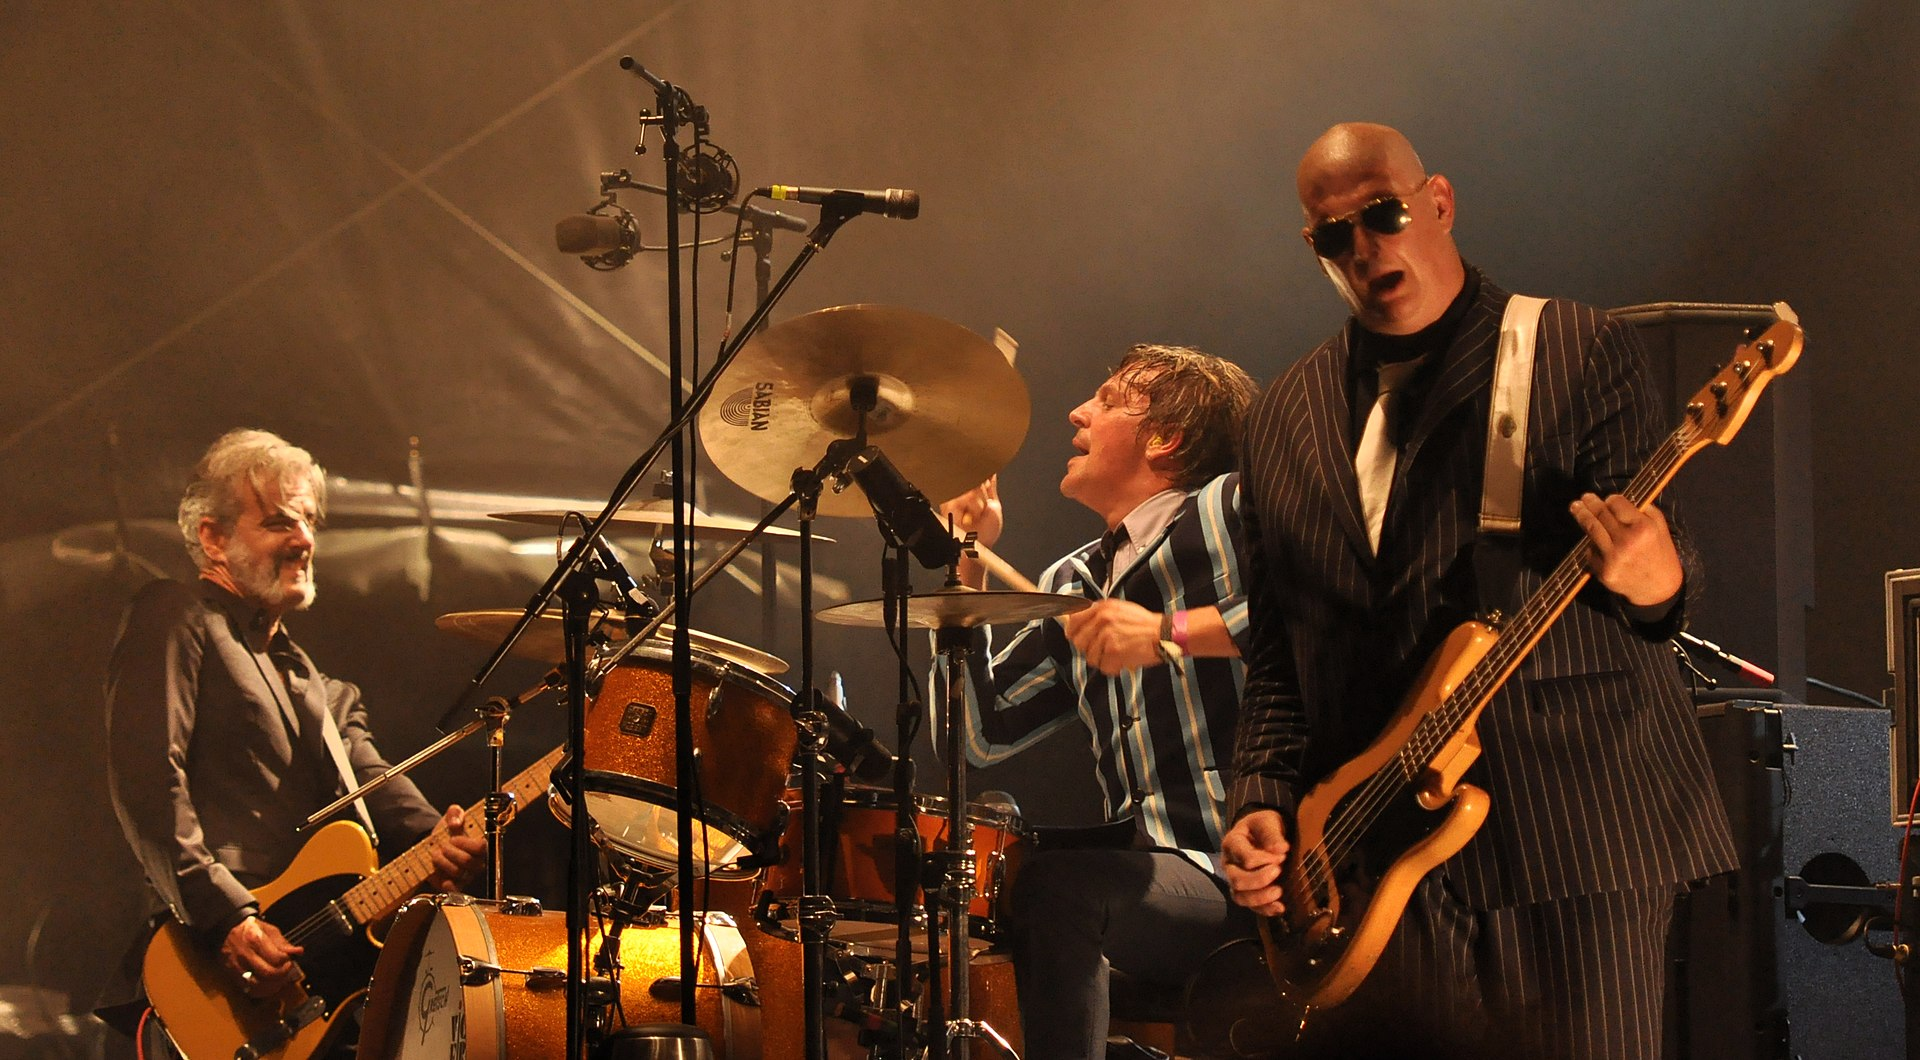 Triggerfinger (band) - Wikipedia